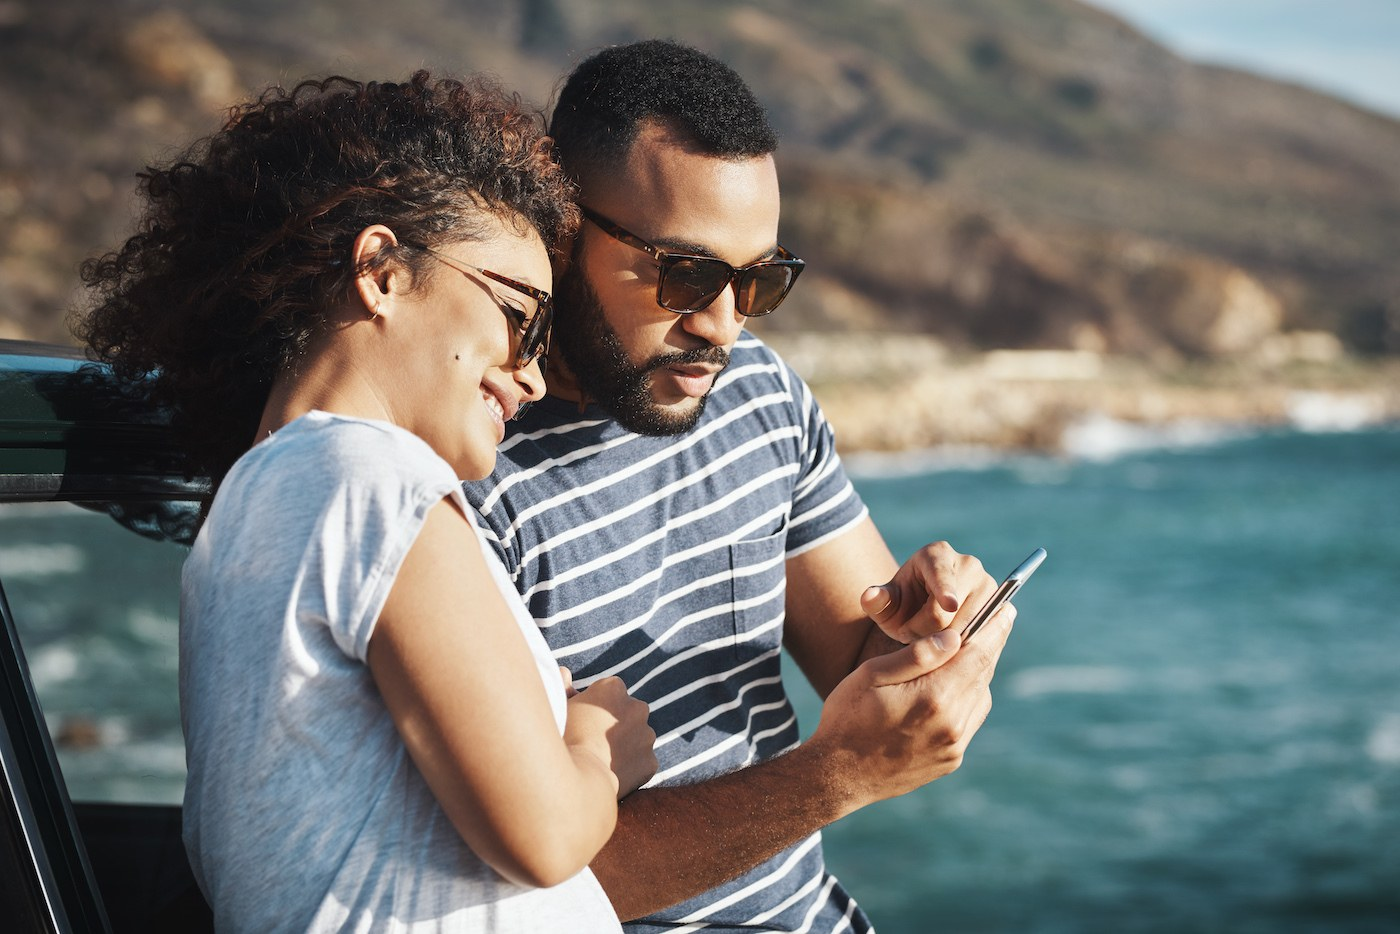 Would you let your partner follow your location 24/7? These people do